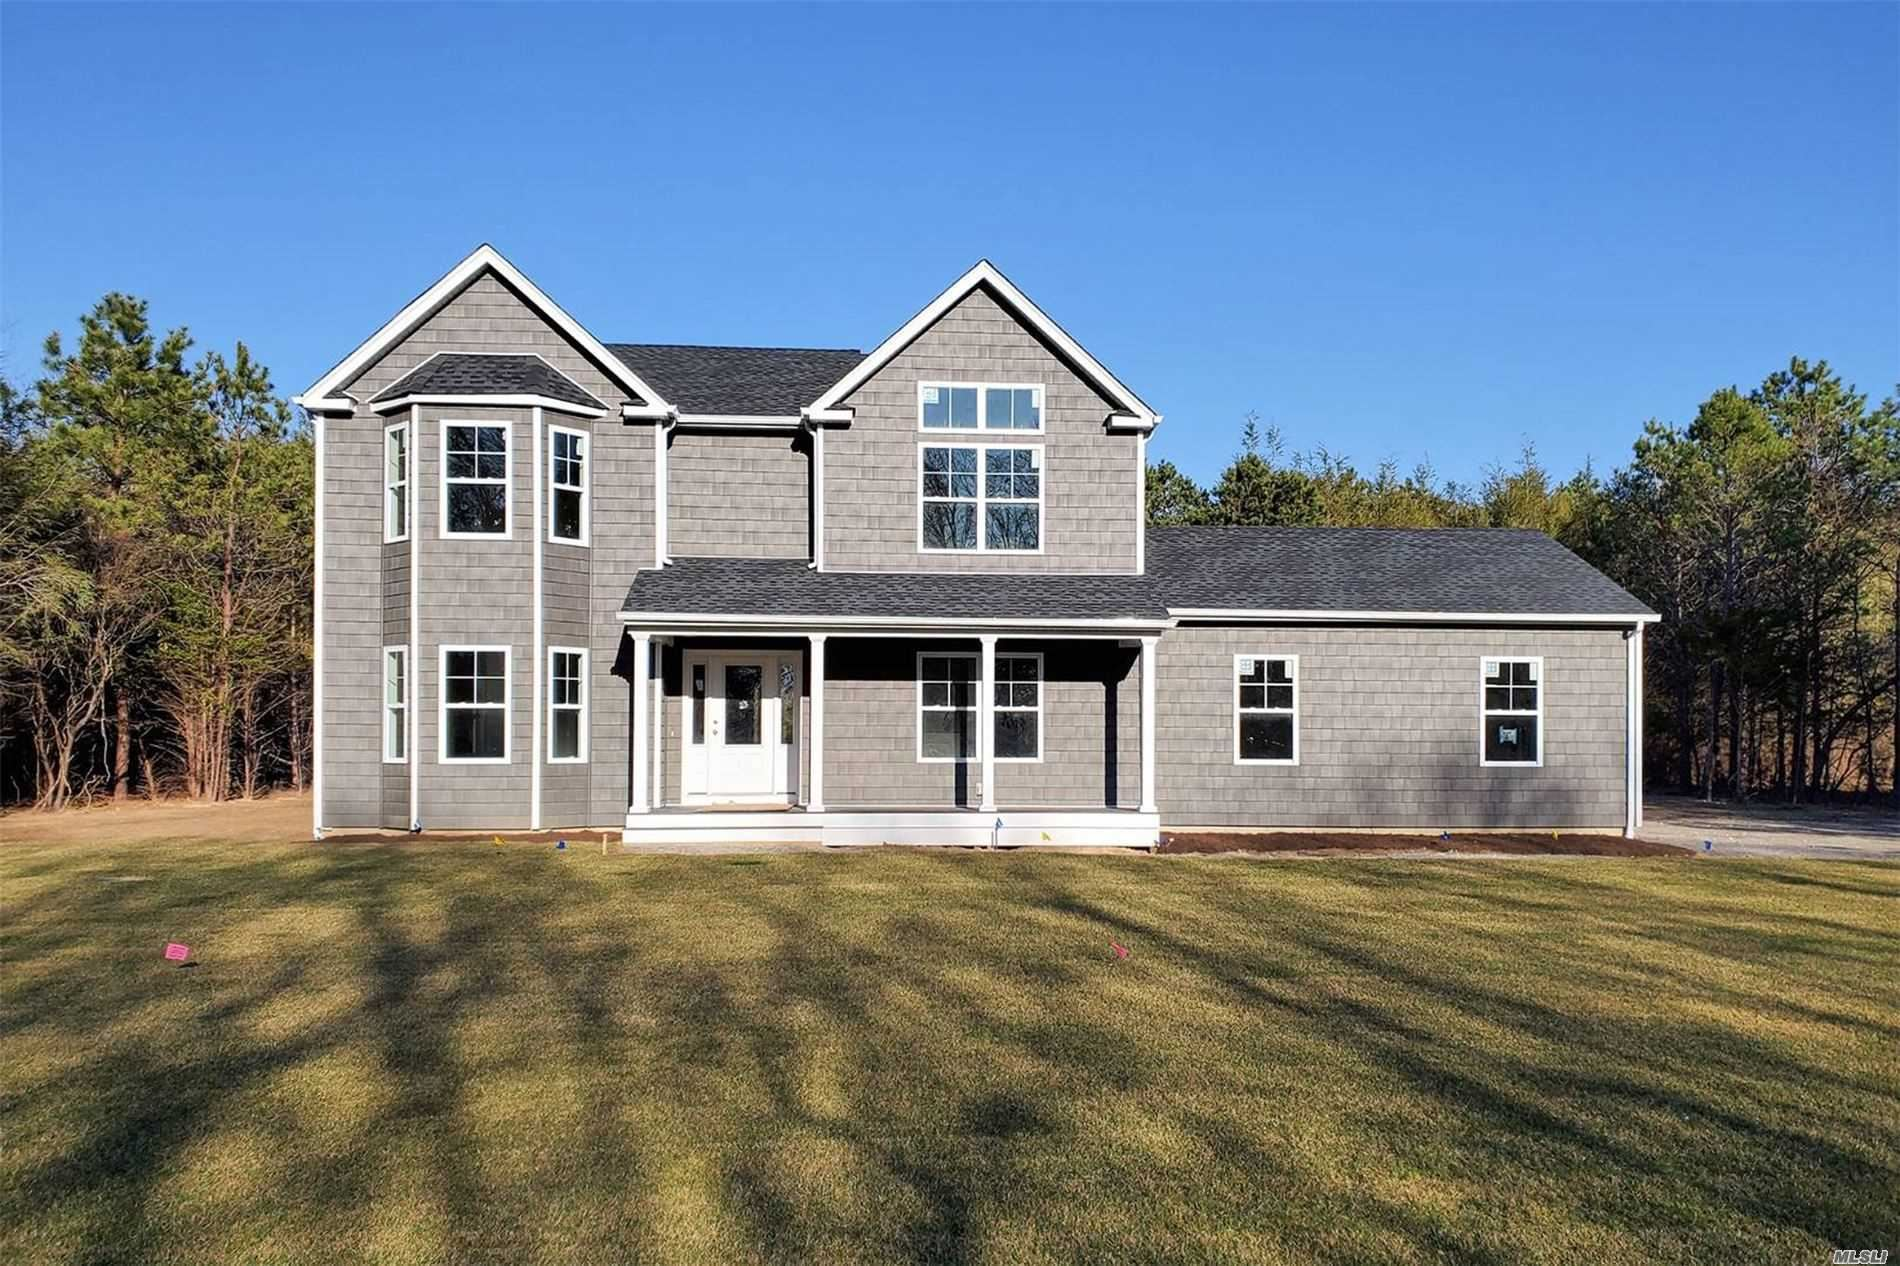 6 N Lawrence--Lot 2 Court, Center Moriches, NY 11934 - MLS#: 3109772